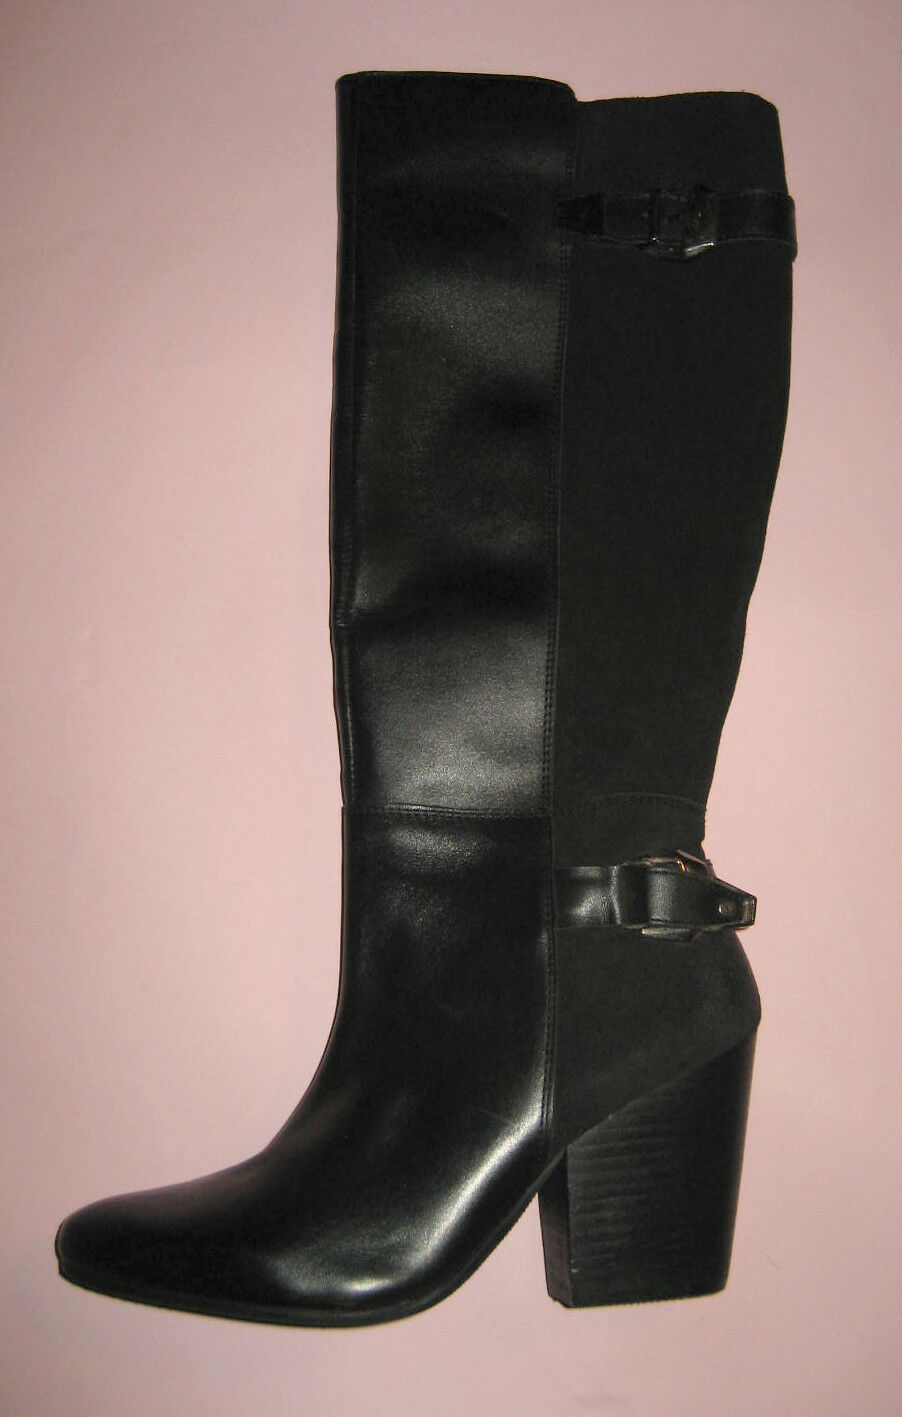 Cole Haan Black Bast Riding Boots Size 8 NIB Leather Suede Round Toe Knee High